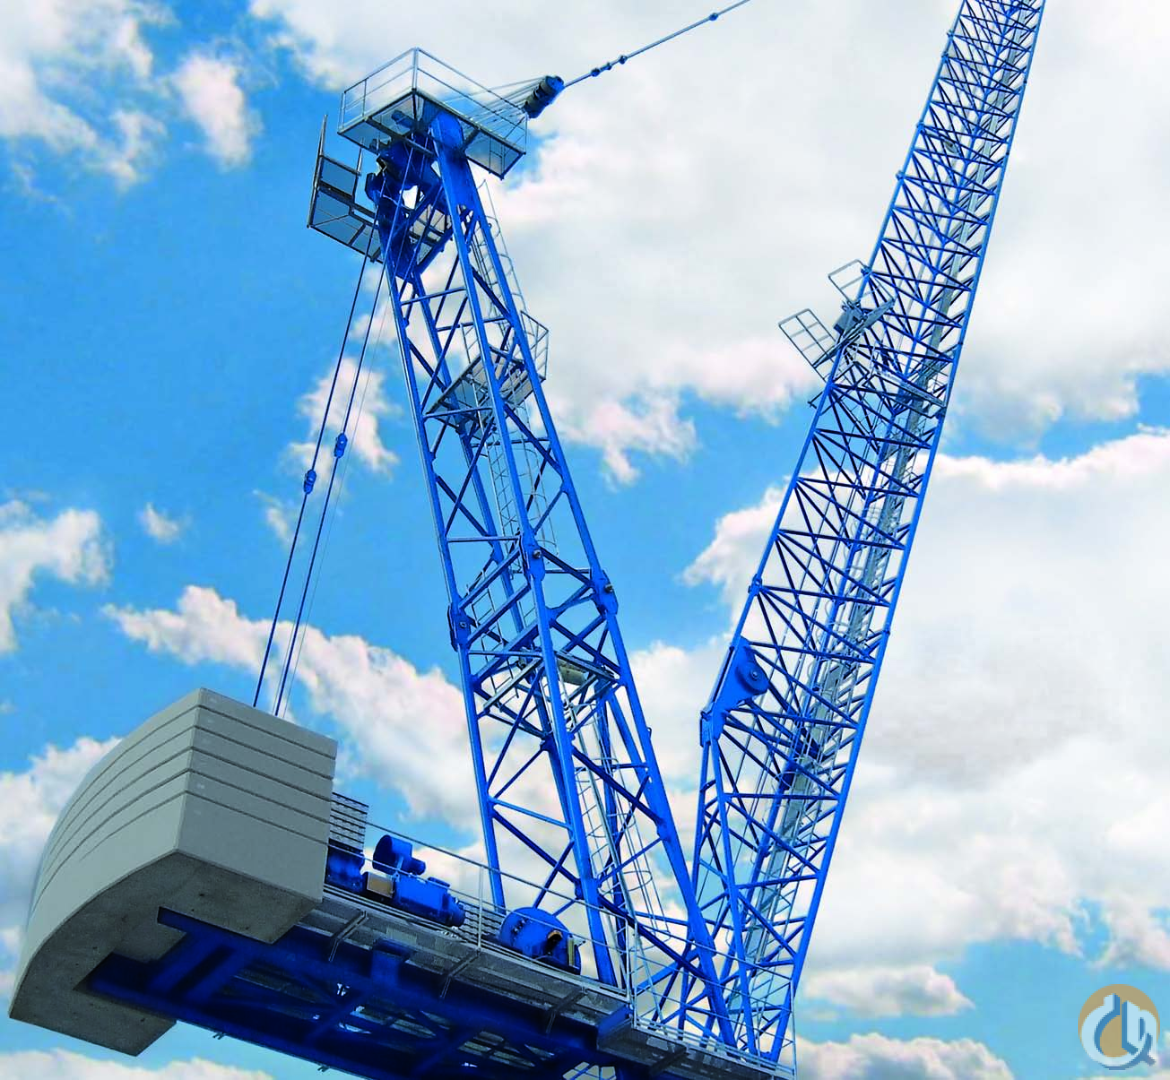 2008 Comansa LCL 500 Crane for Sale or Rent in Cartagena Bolivar on CraneNetwork.com